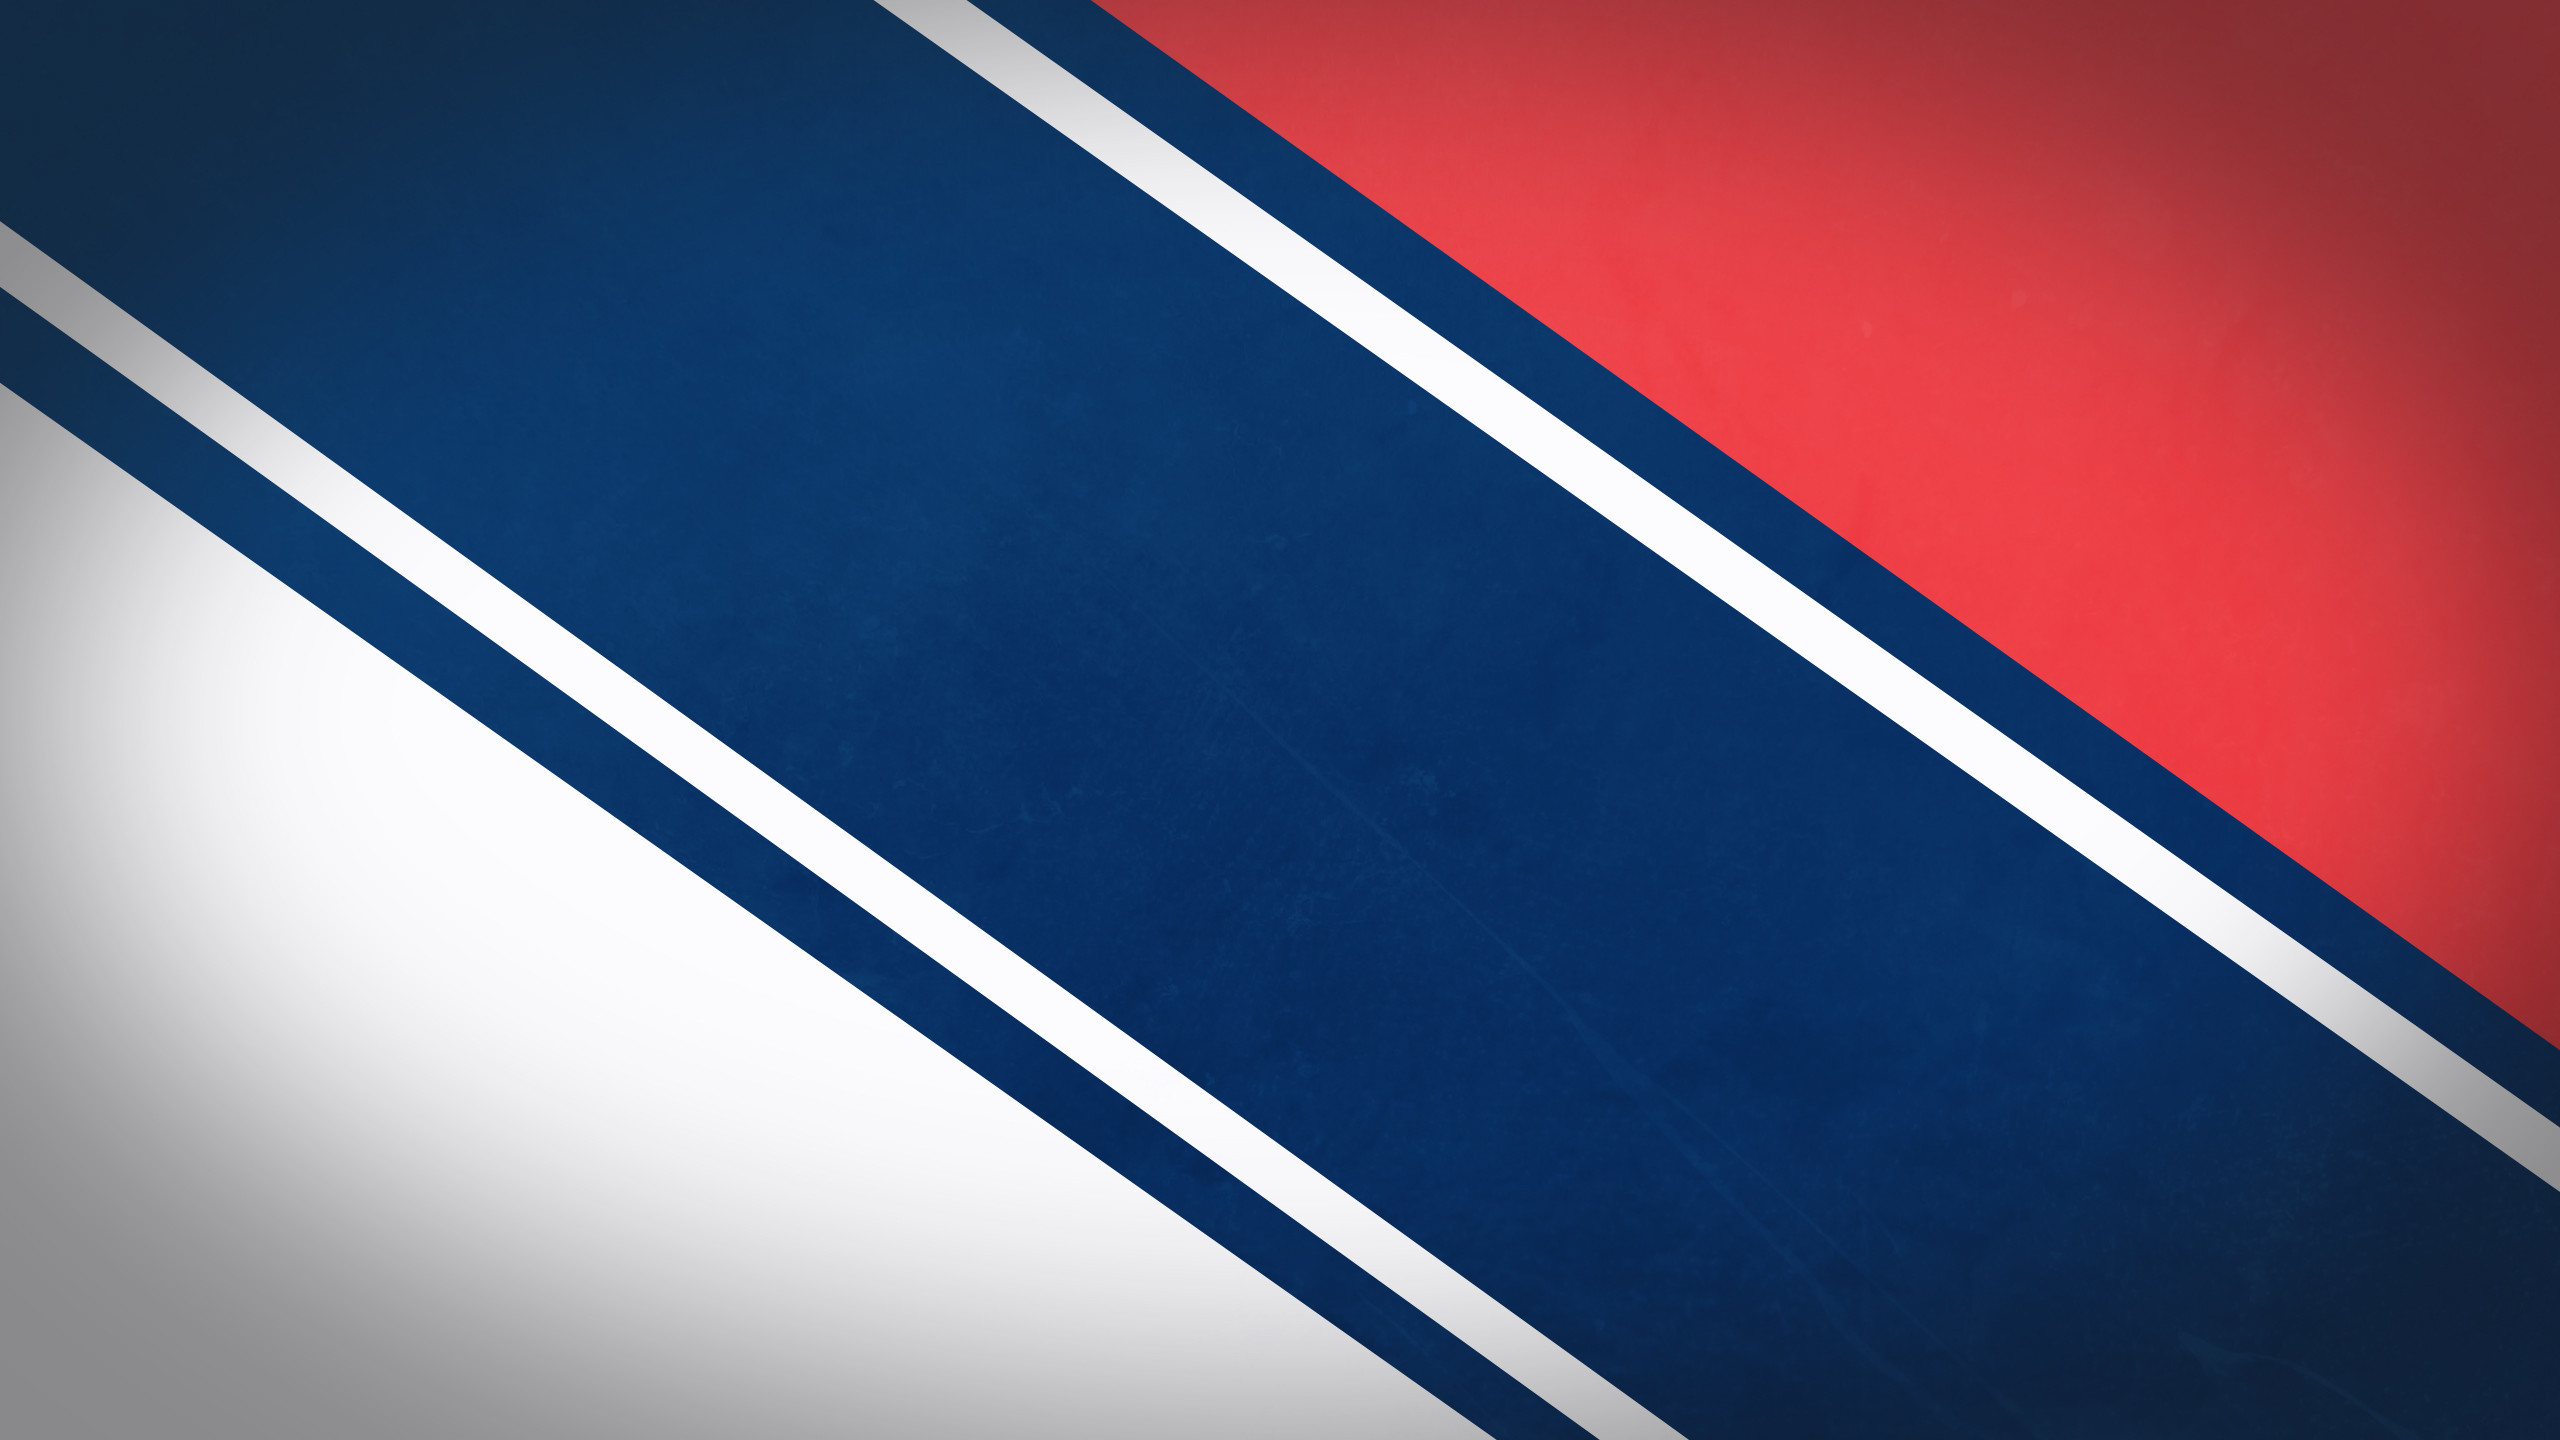 2560x1440 New York Rangers Wallpaper